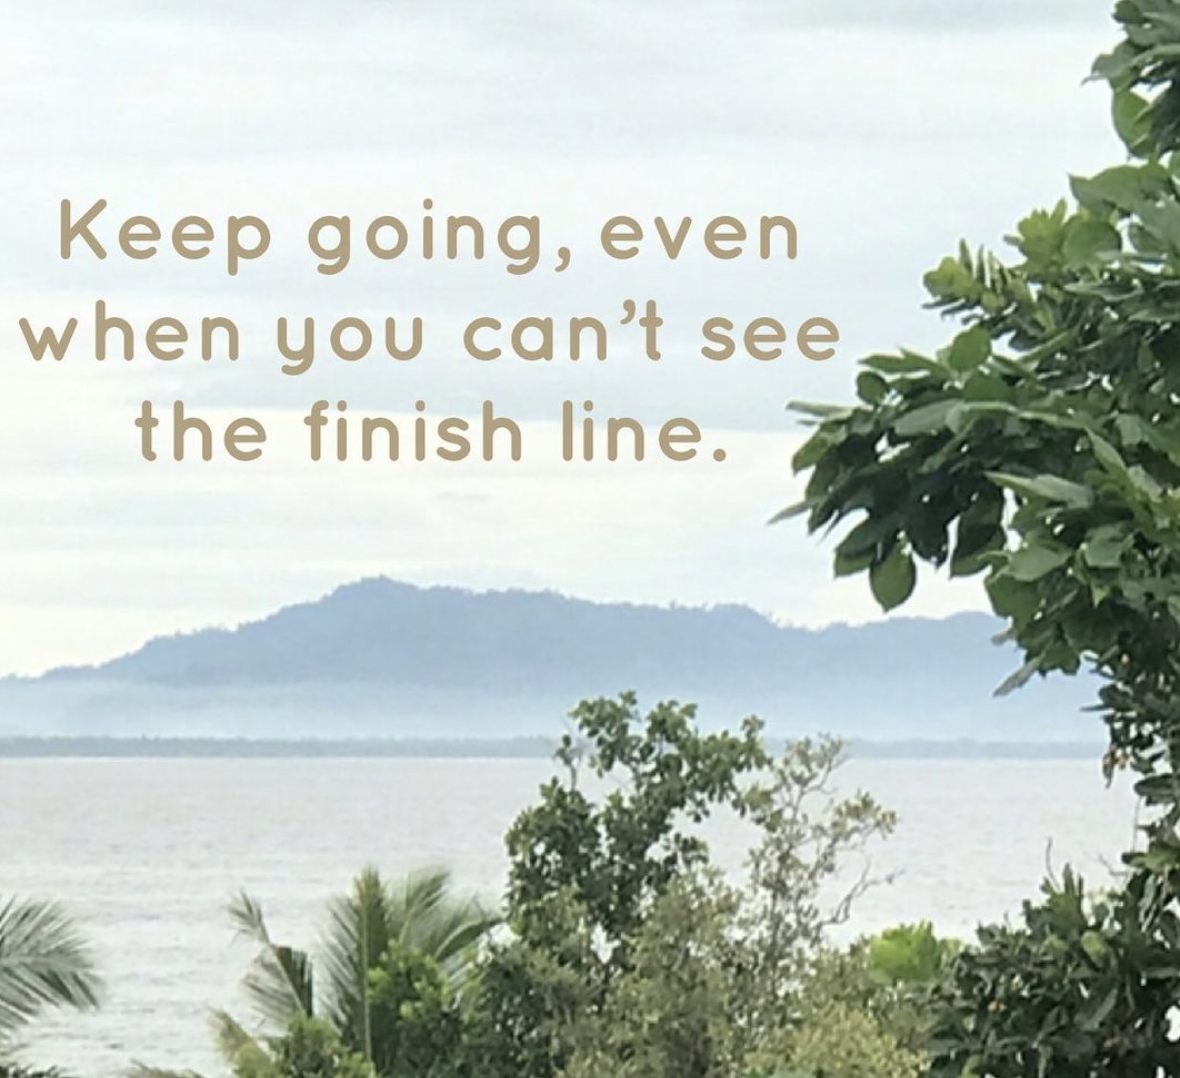 [Image] Keep going, even when you can't see the finish line.